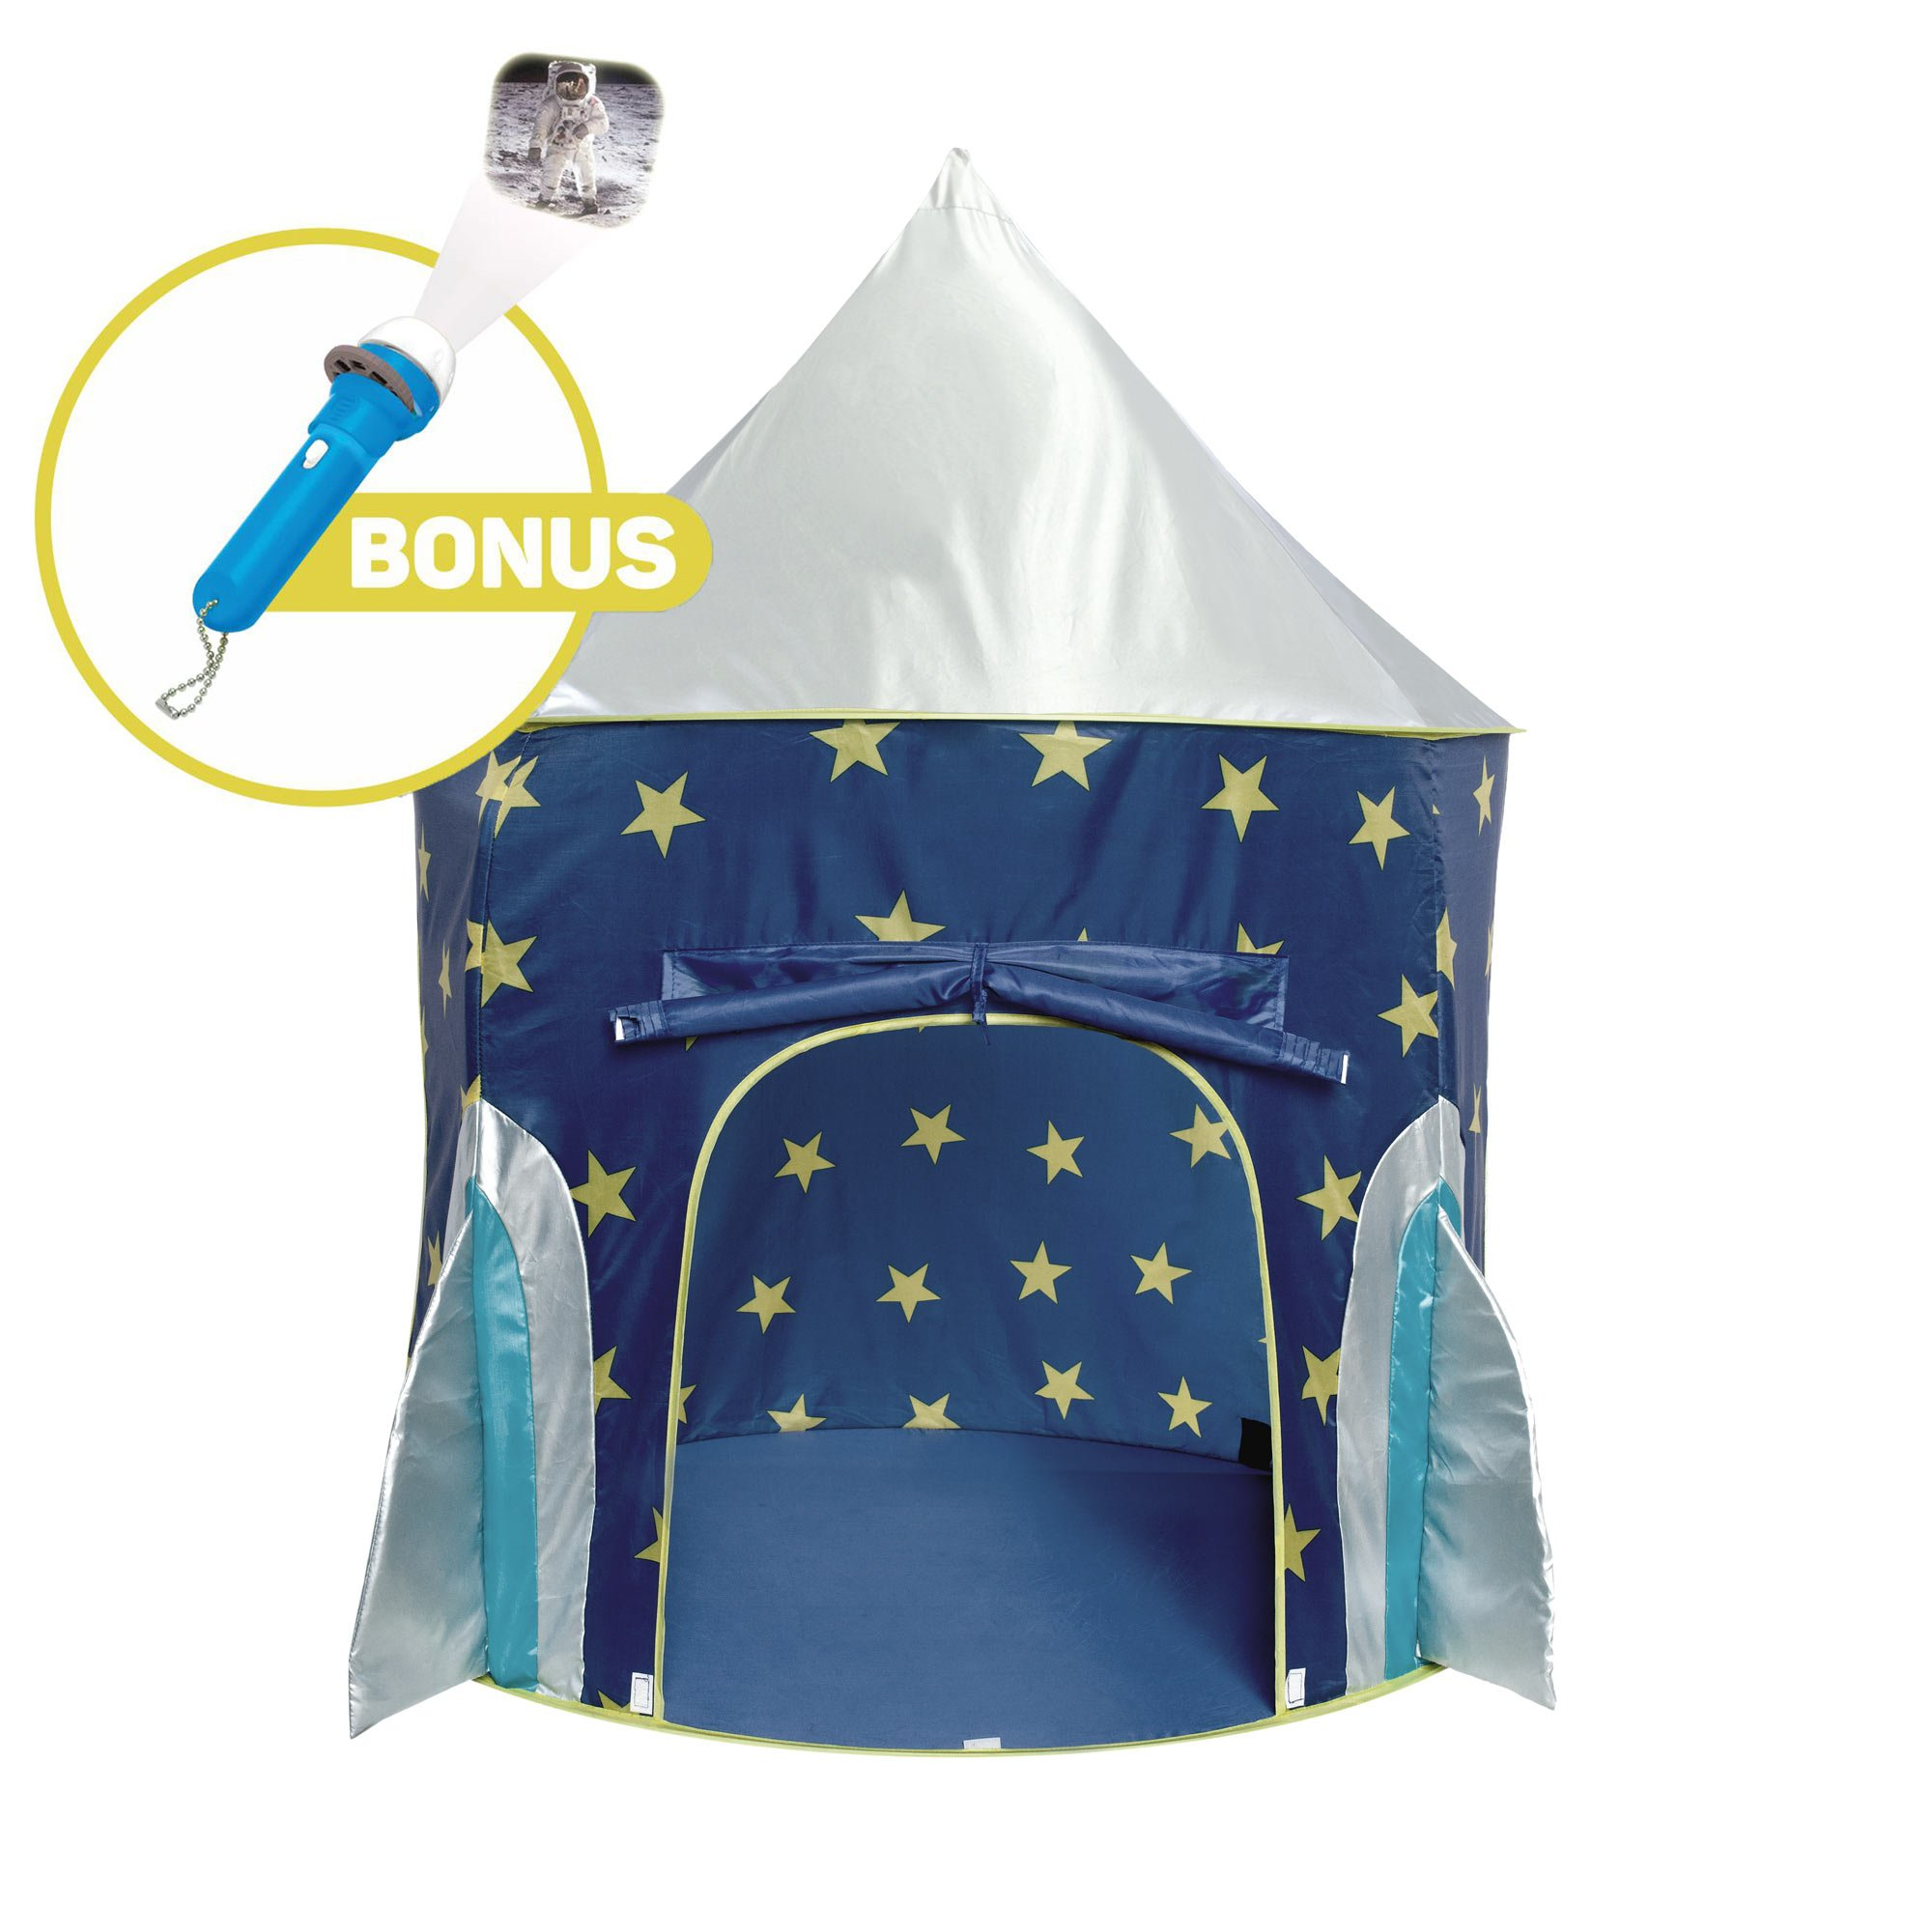 Rocket Ship Play Tent - Spaceship Playhouse with Bonus Space Torch Projector